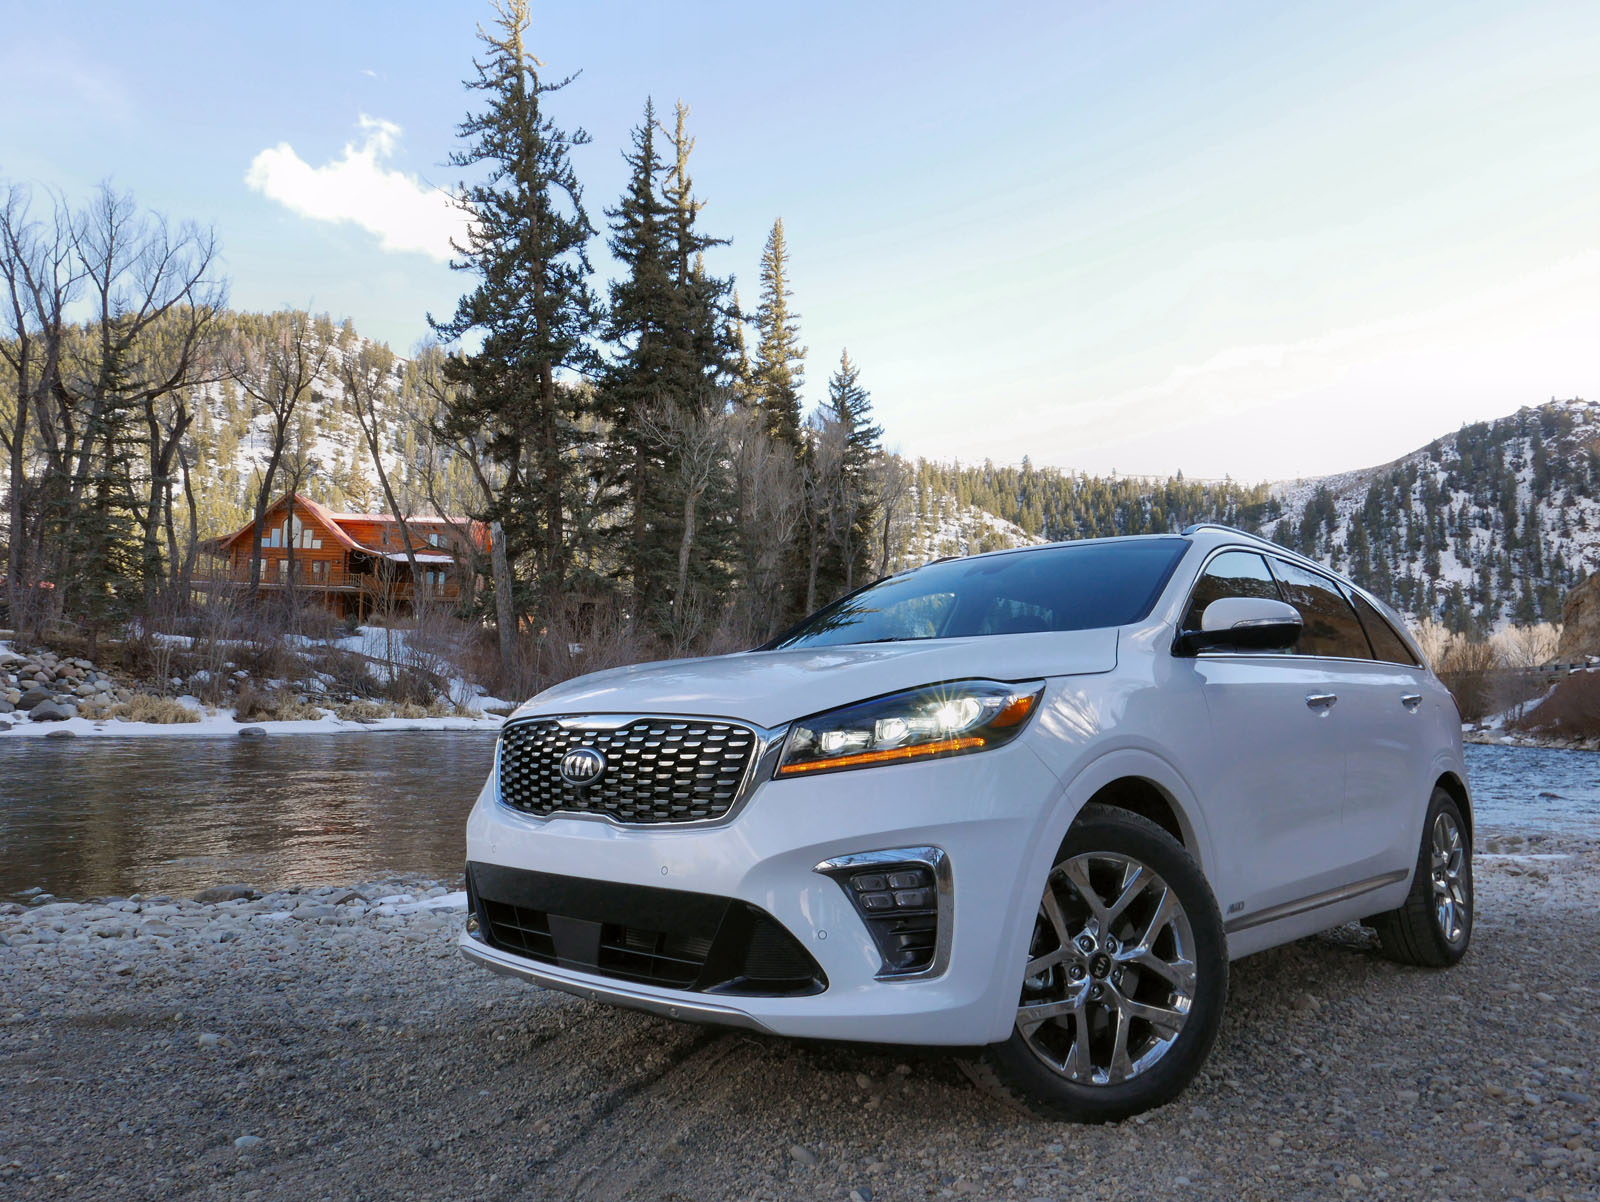 Tesla >> 2019 Kia Sorento Review and First Drive - AutoGuide.com